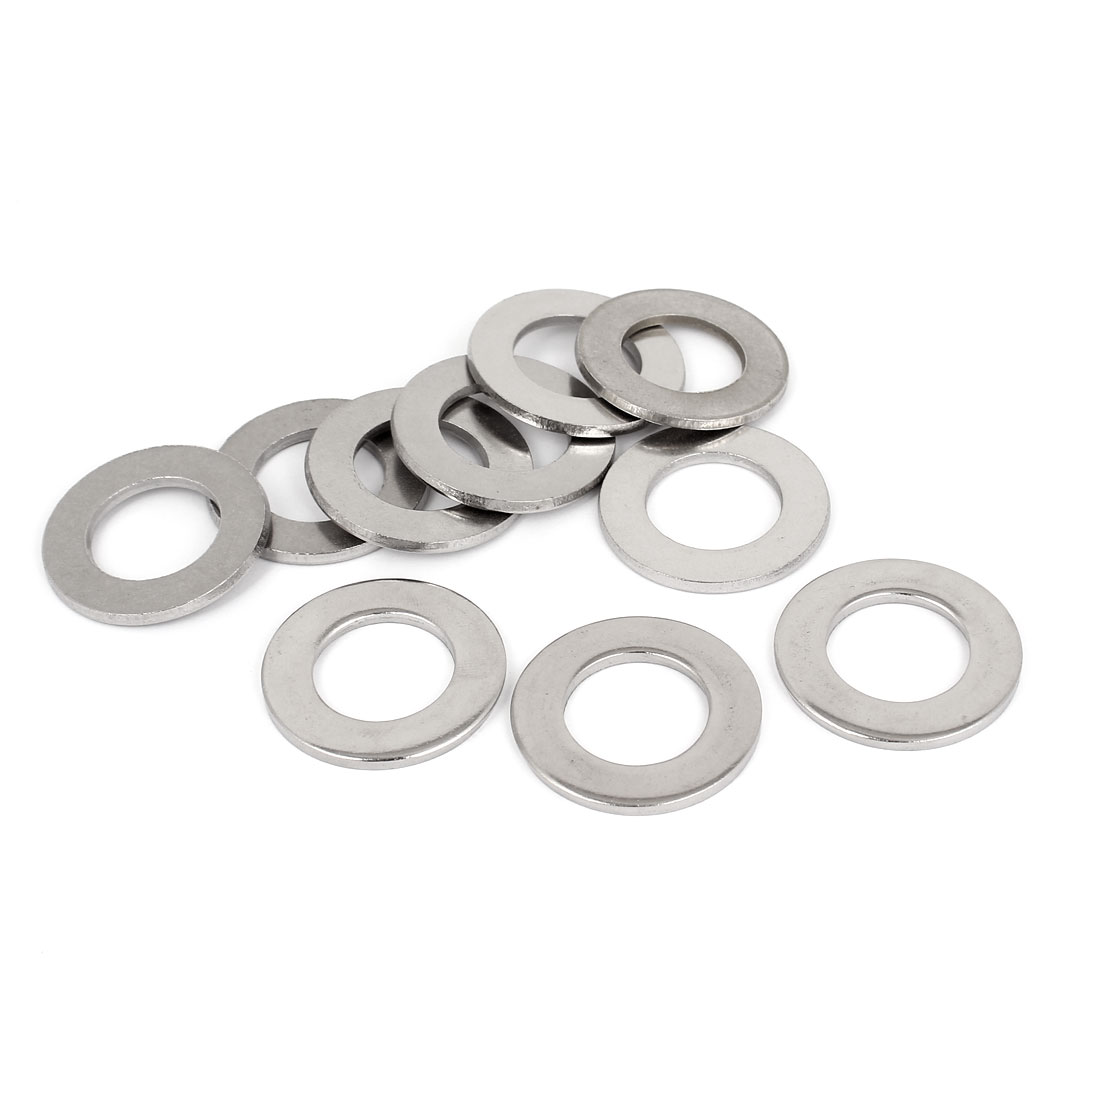 "10pcs Silver Tone 316 Stainless Steel Flat Washer 3/4"" for Screws Bolts"